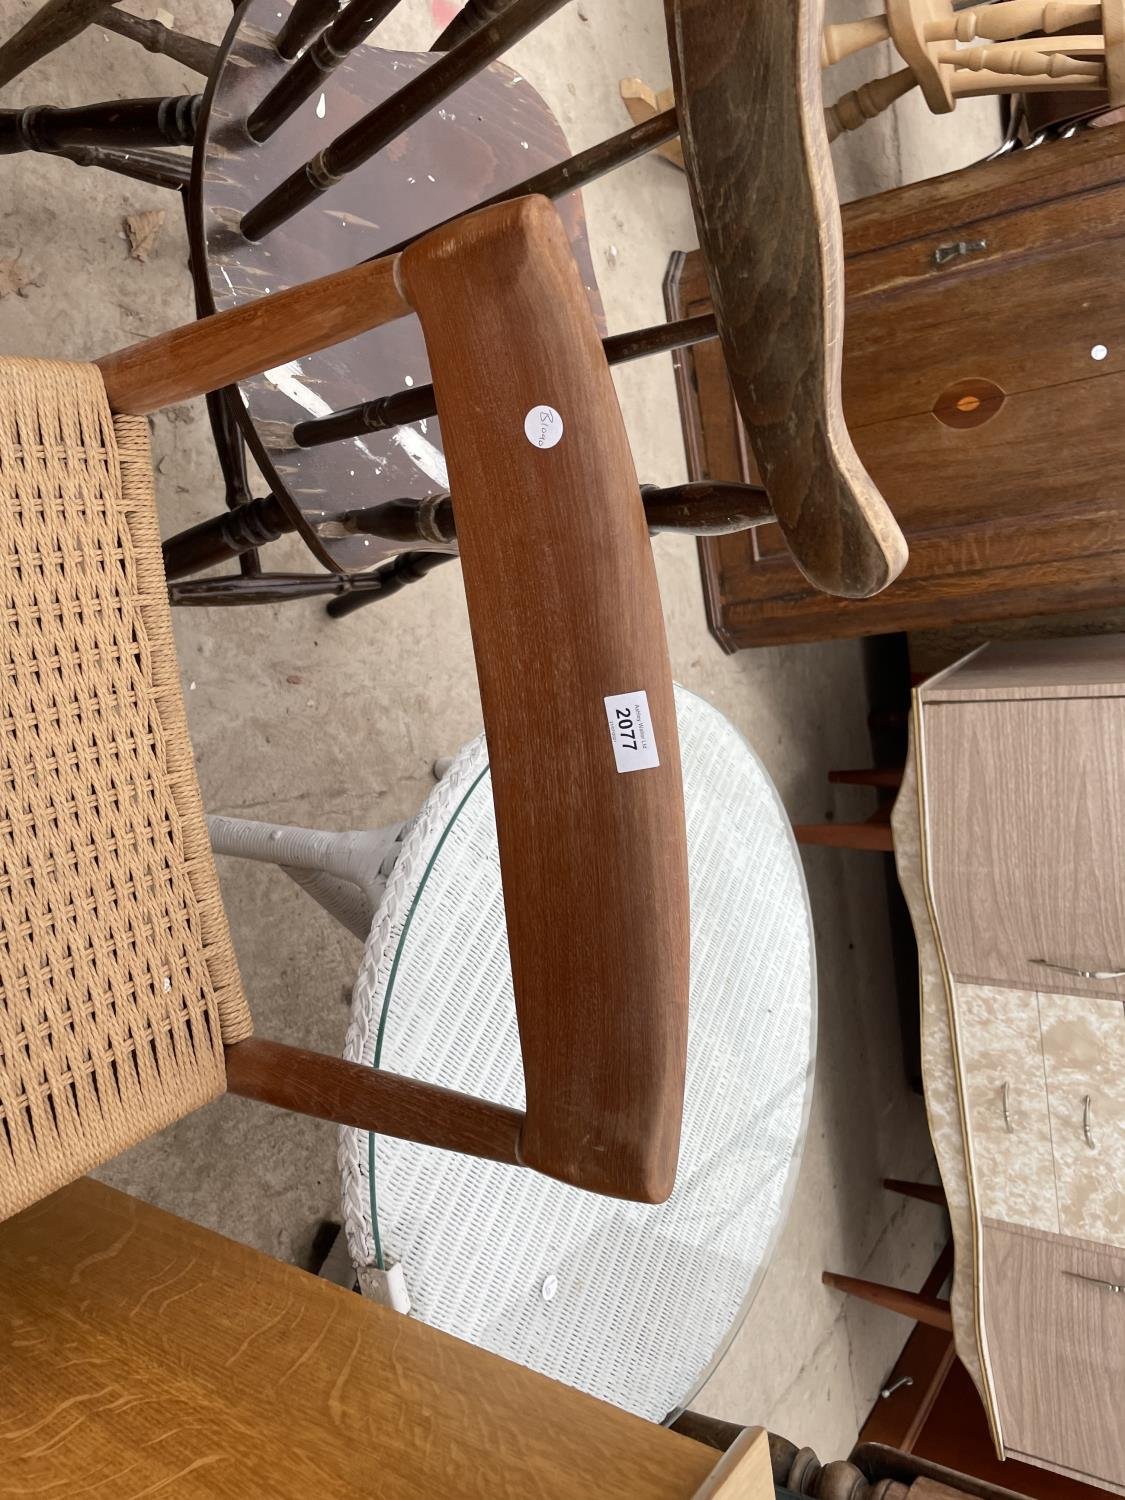 A RETRO TEAK SINGLE DINING CHAIR WITH RATTAN SEAT - Image 2 of 3